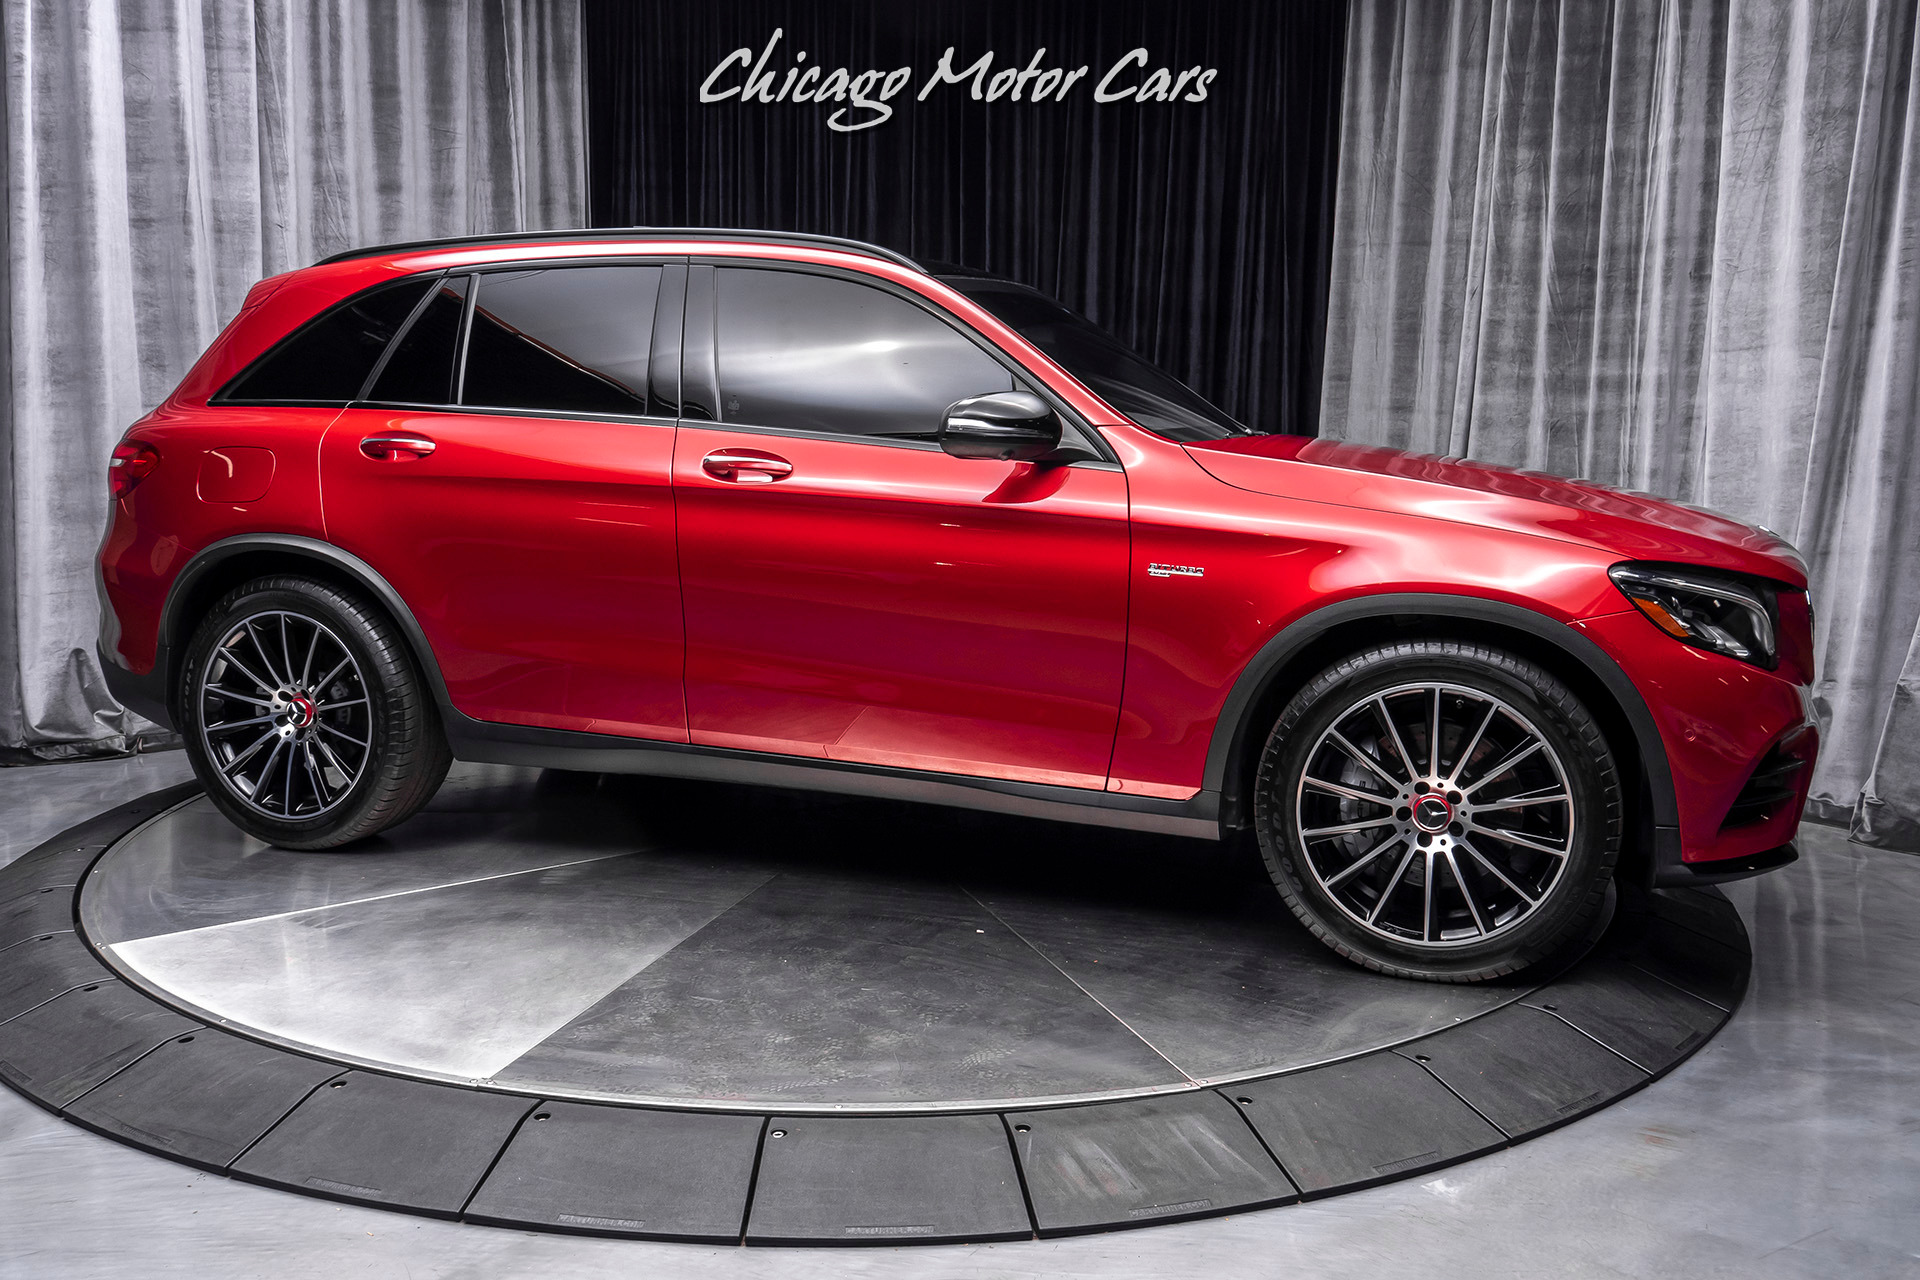 Used-2018-Mercedes-Benz-GLC-43-AMG-SUV-MULTIMEDIA-PACKAGE-PARK-ASSIST